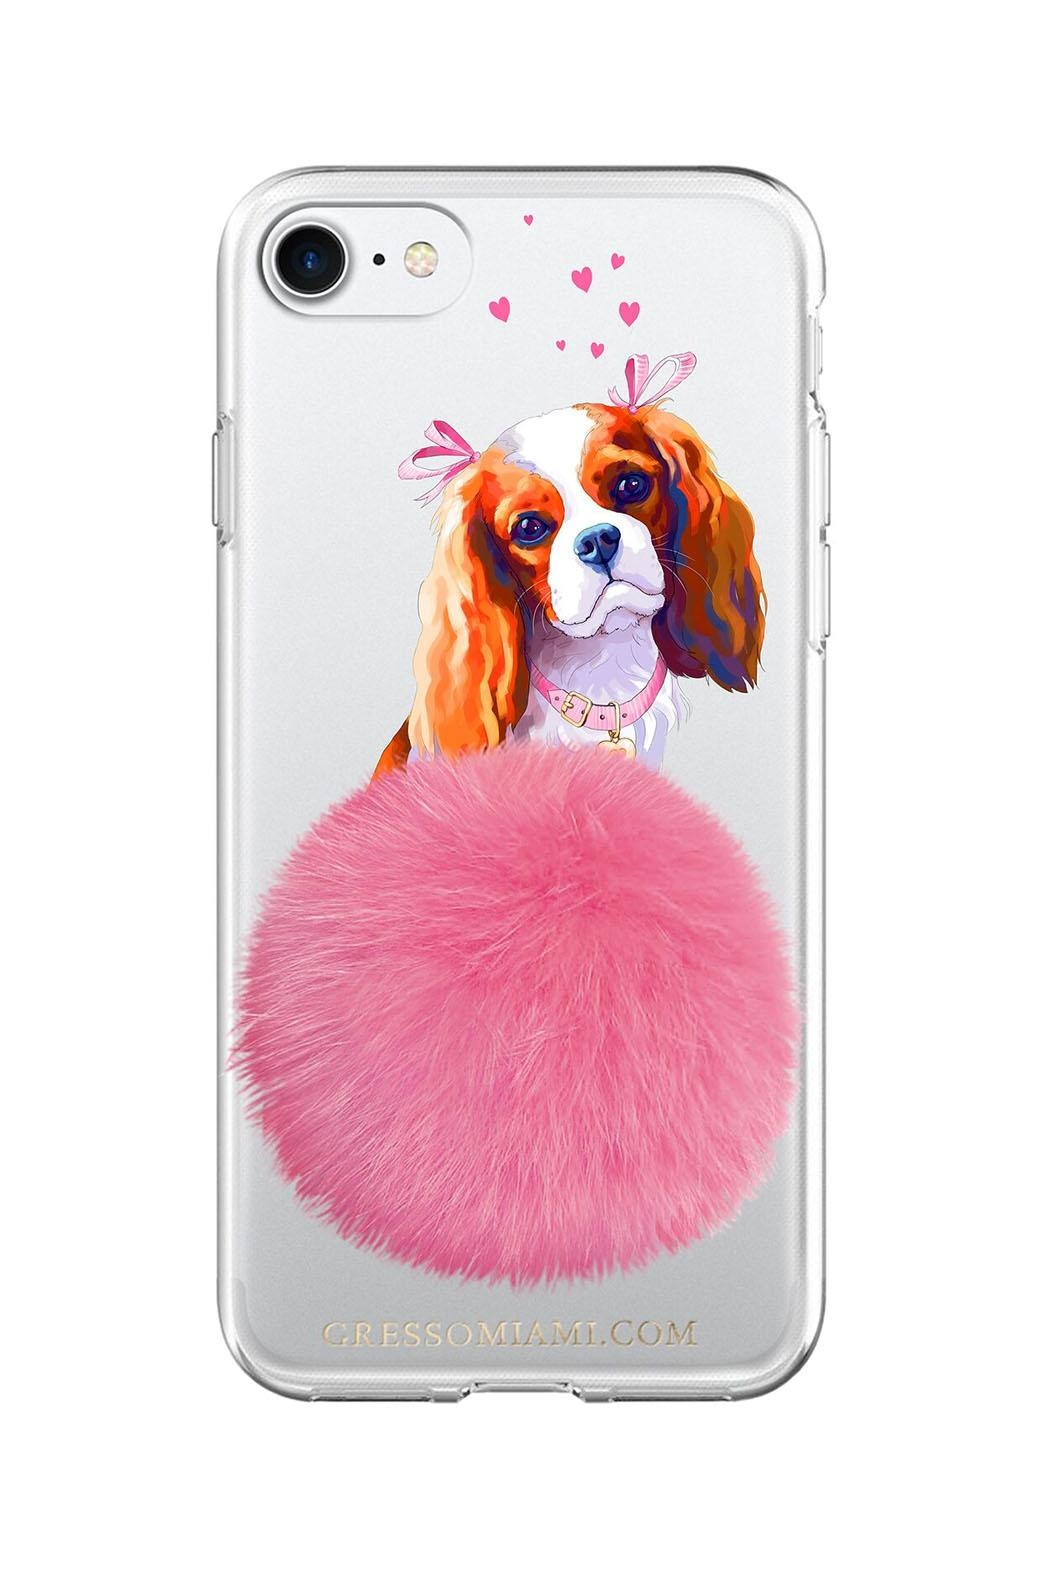 Gresso Miami Spaniel Furbaby Iphone7 Case - Main Image